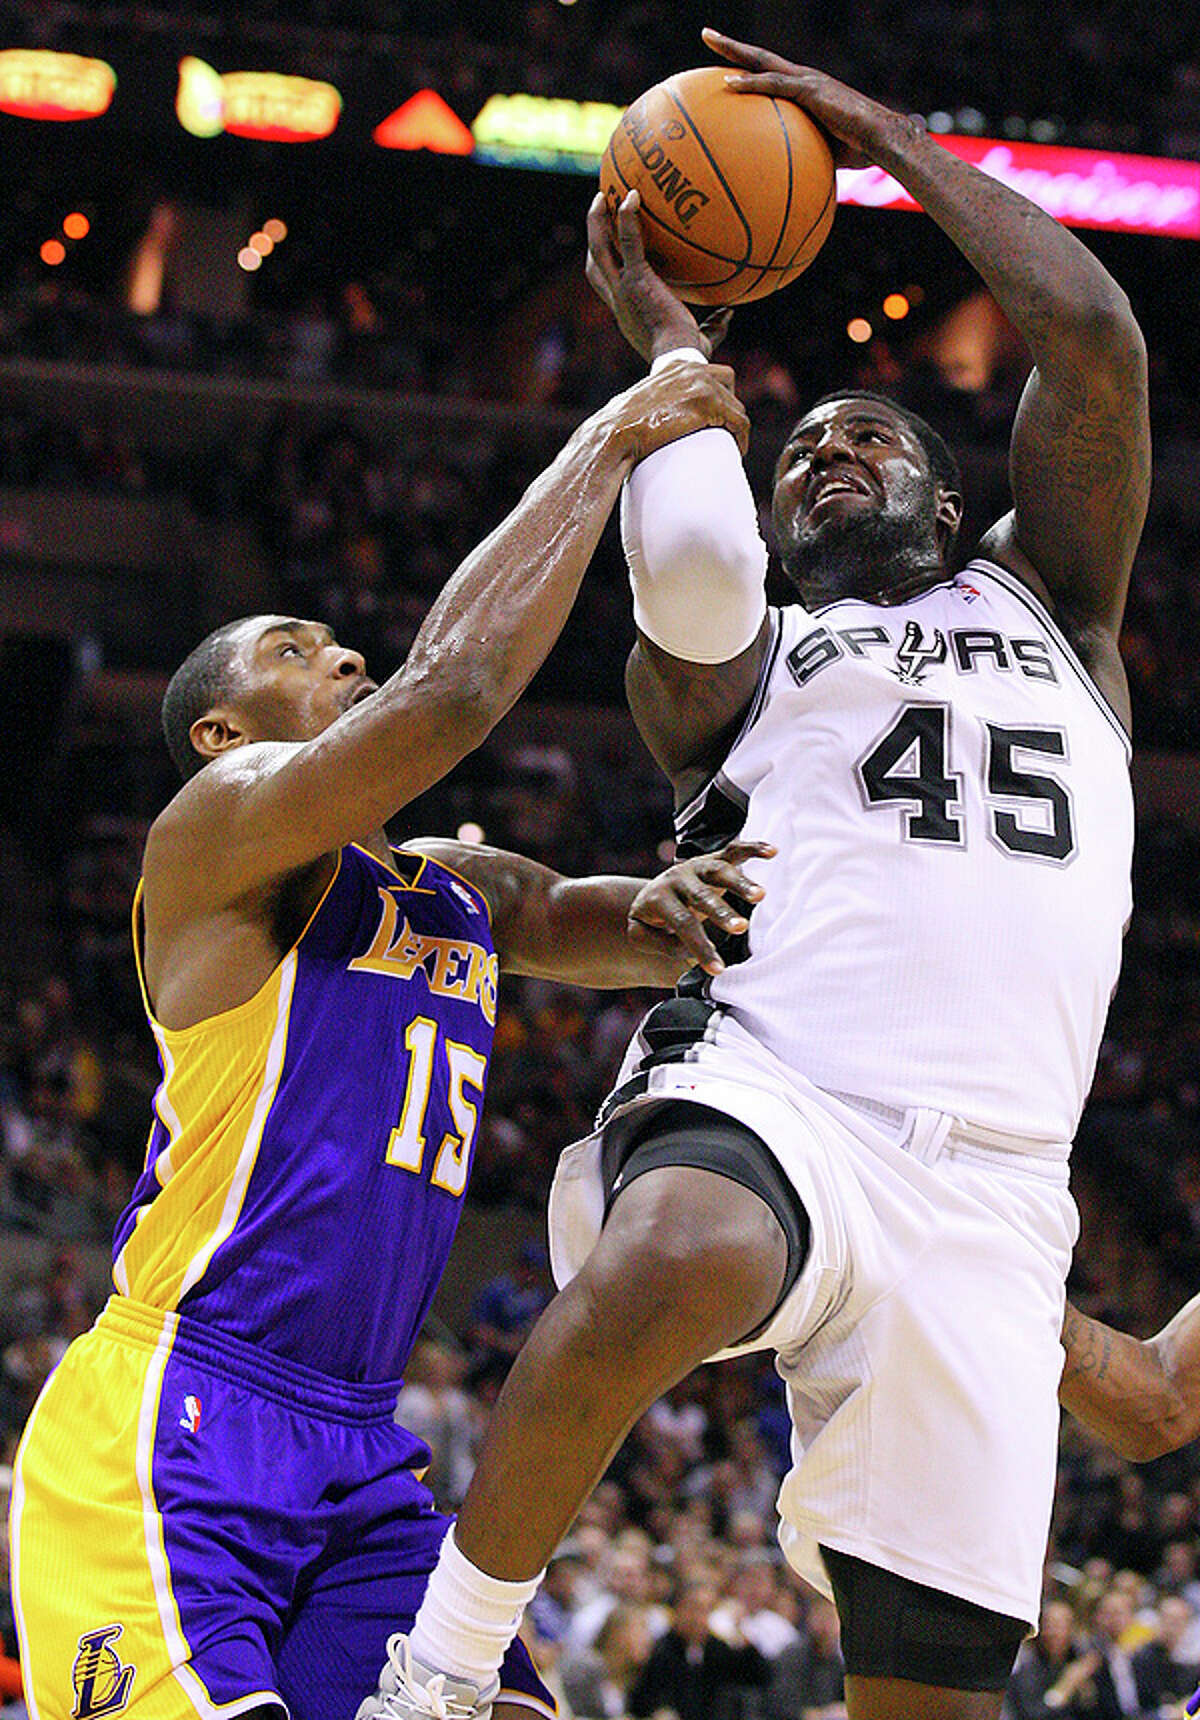 Spurs' DeJuan Blair is fouled by Lakers' Ron Artest during second half action Tuesday Dec. 28, 2010 at the AT&T Center. The Spurs won 97-82. EDWARD A. ORNELAS/eaornelas@express-news.net